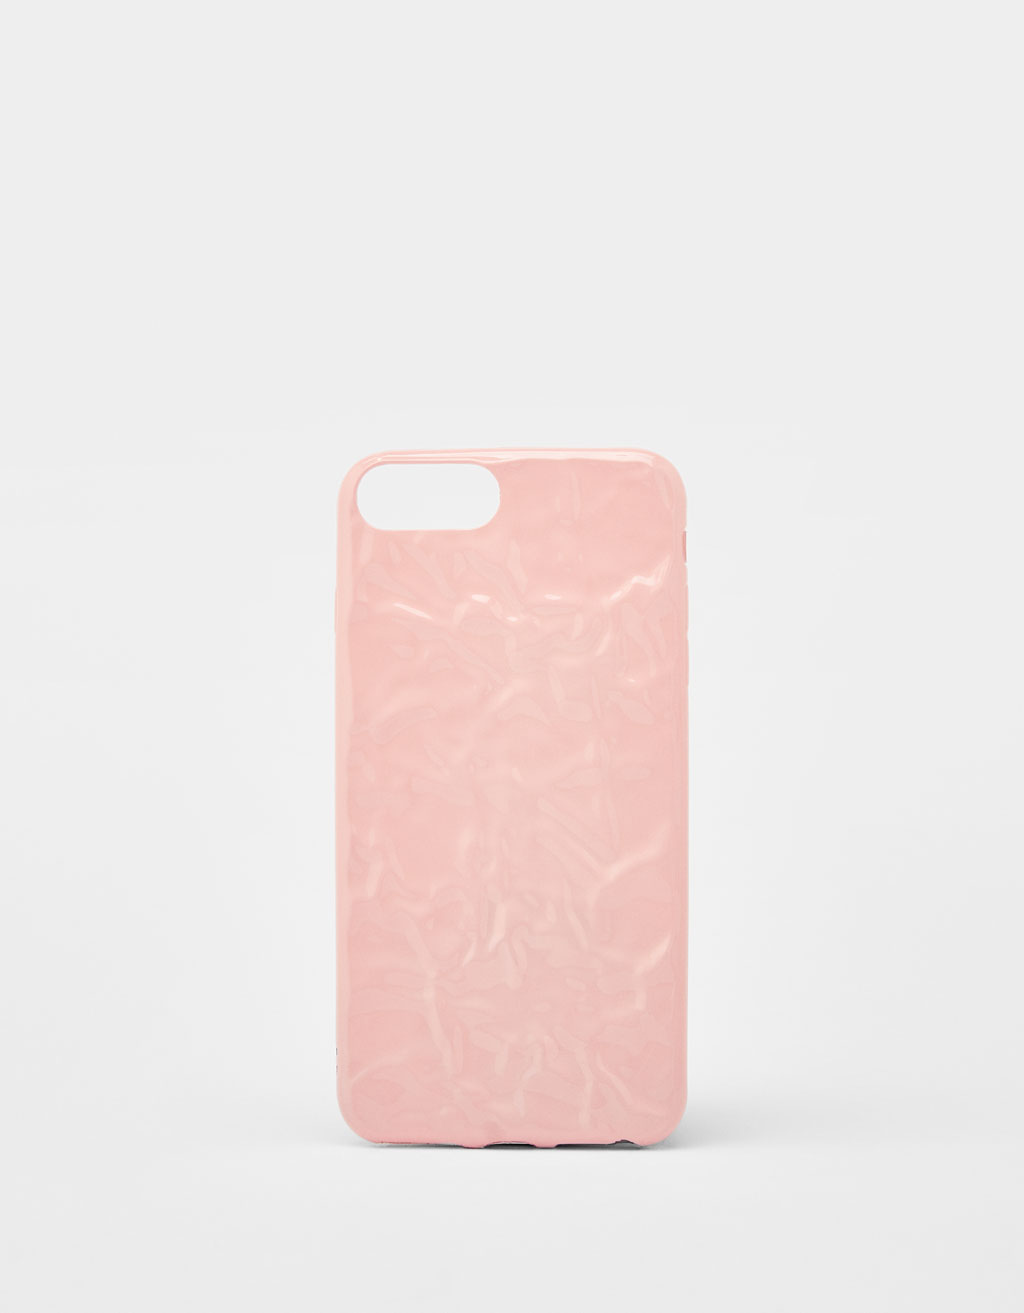 Textured iPhone 6 Plus / 7 Plus / 8 Plus case